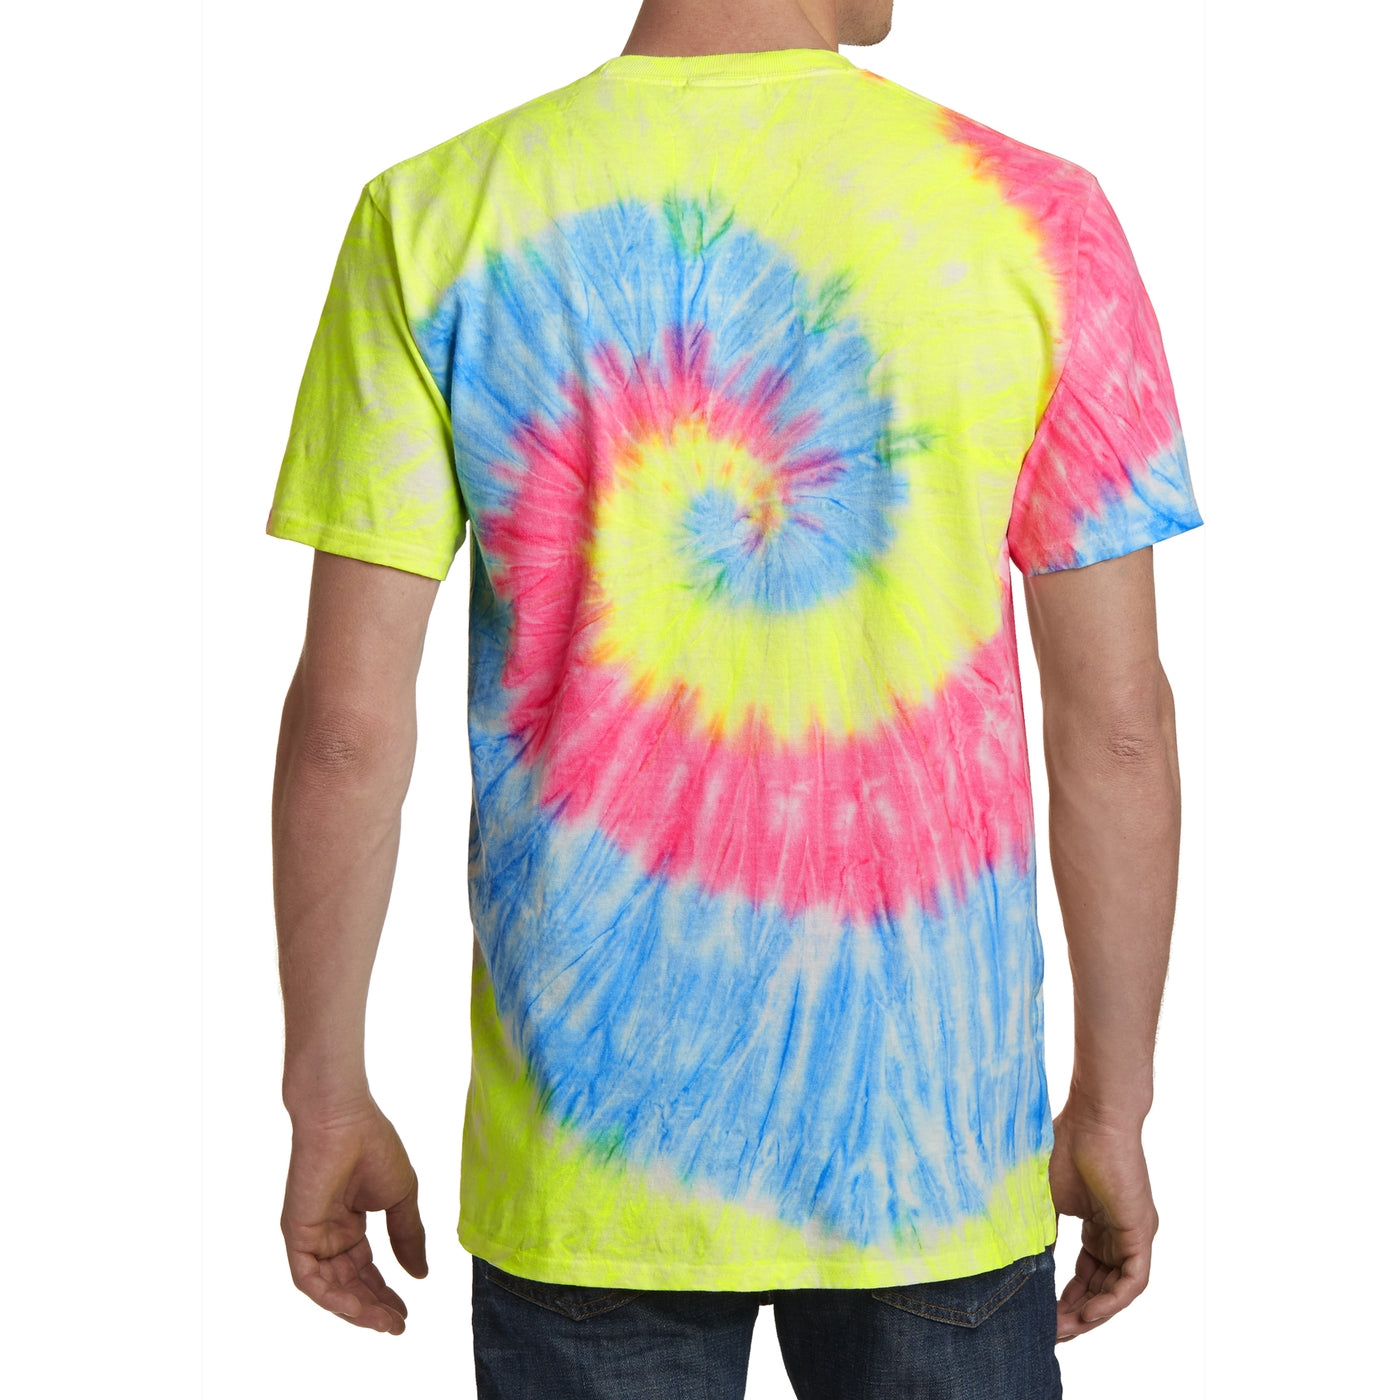 Men's Tie-Dye Tee - Neon Rainbow - Back